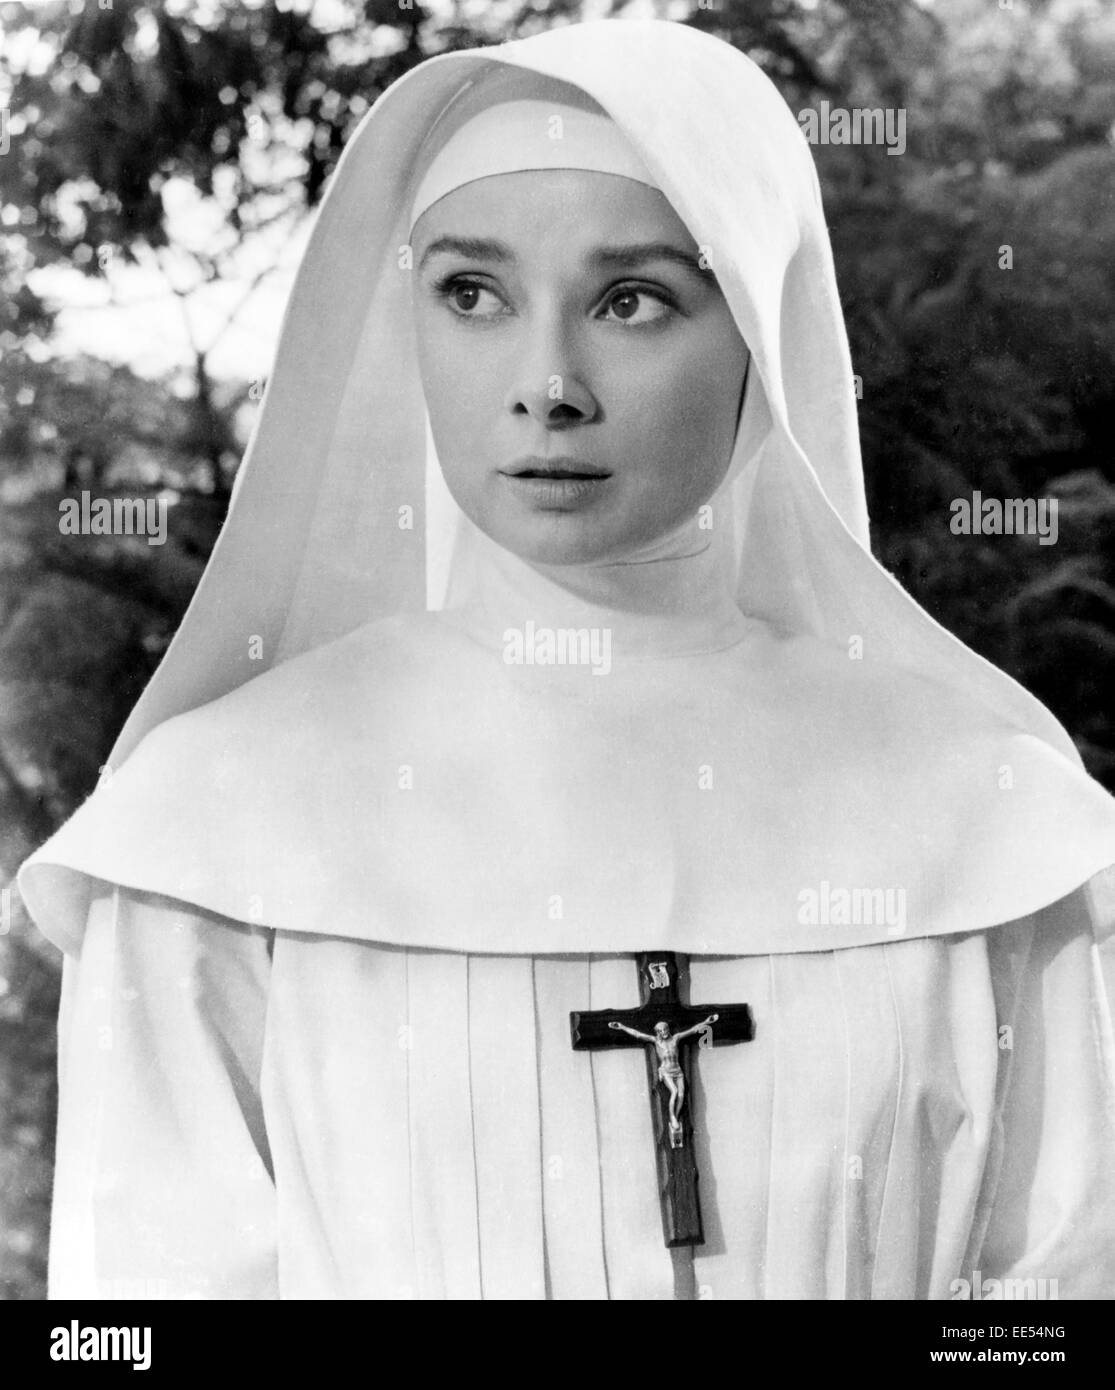 Audrey Hepburn, on-set of the Film, 'The Nun's Story', 1959 - Stock Image